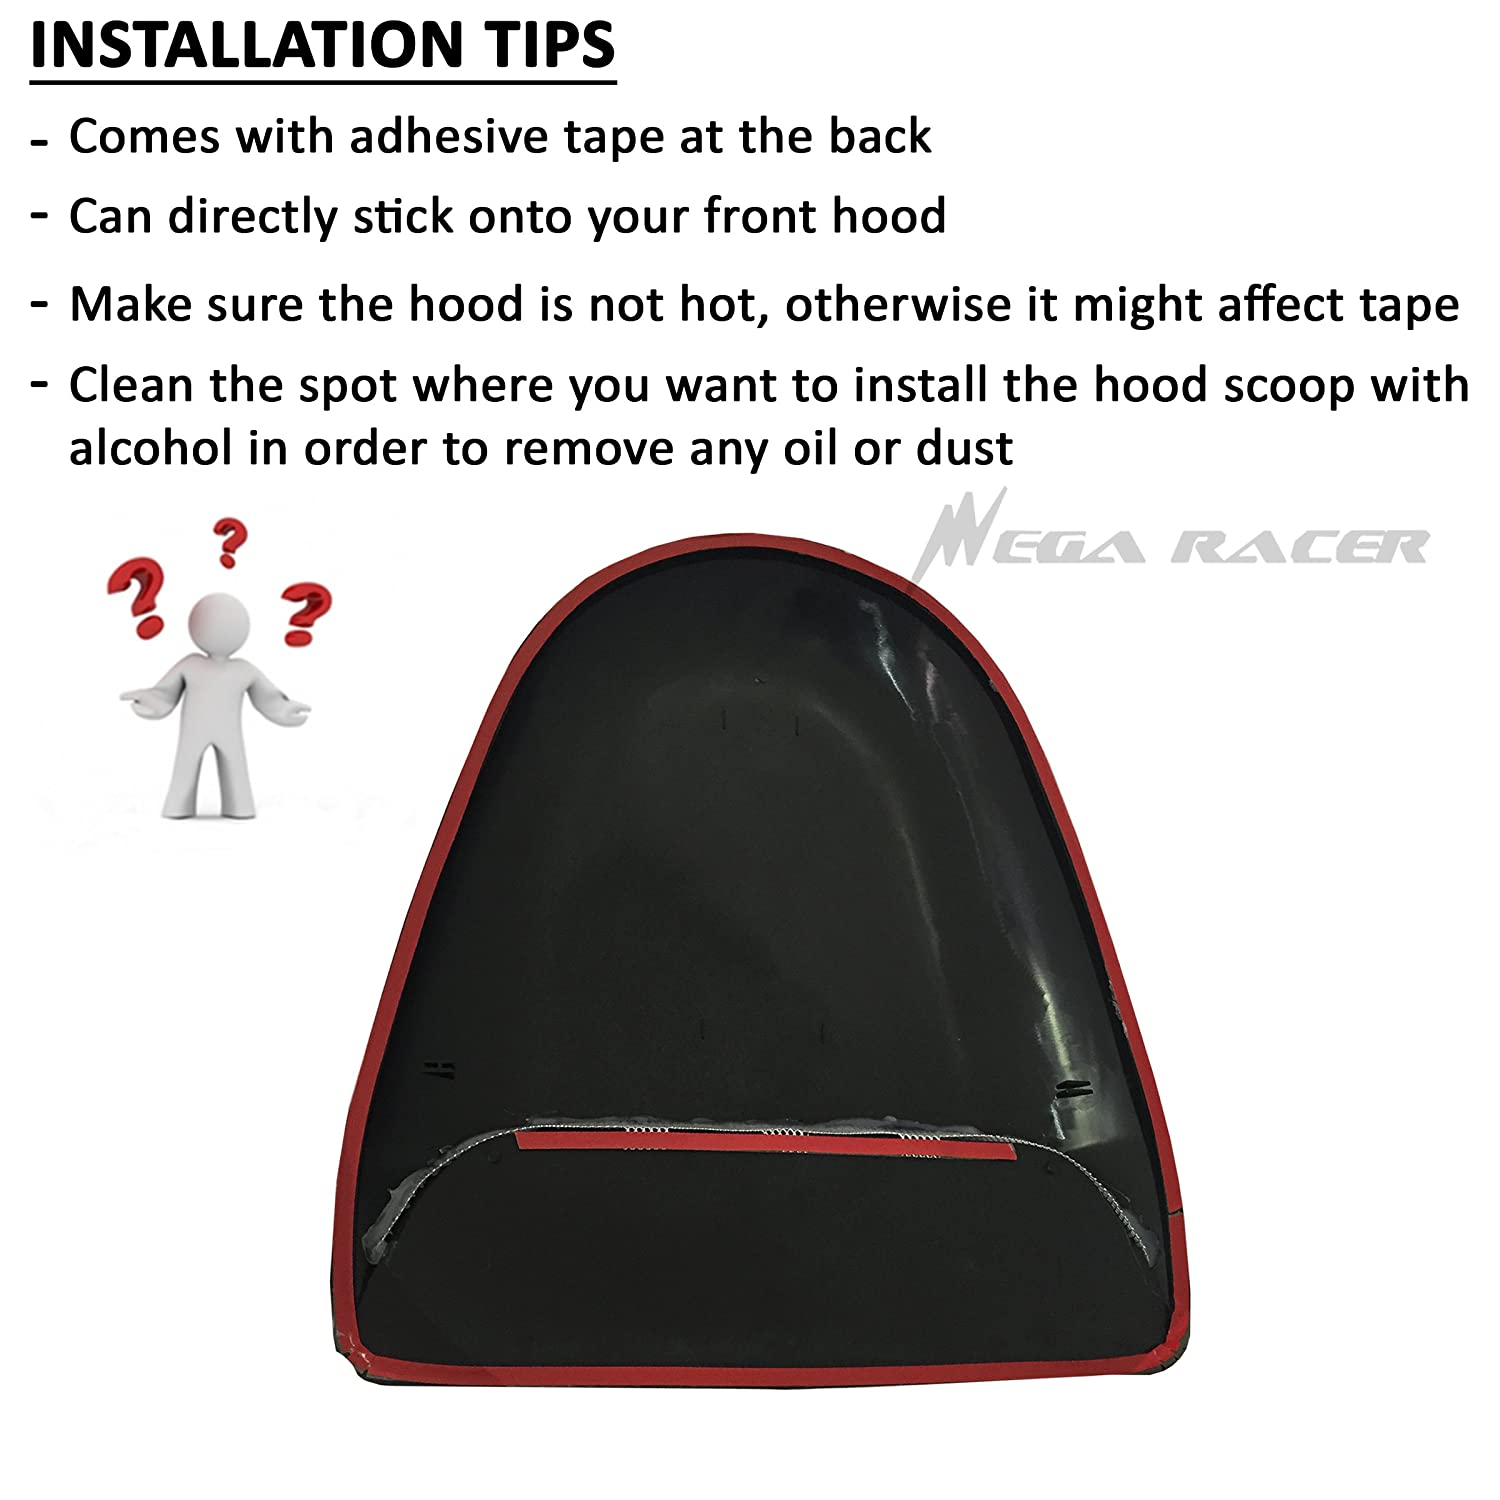 Universal JDM Style Decorative Hood Scoop Smoke Black Sport Racing Air Flow Intake Vent Cover Paintable Auto USA Seller